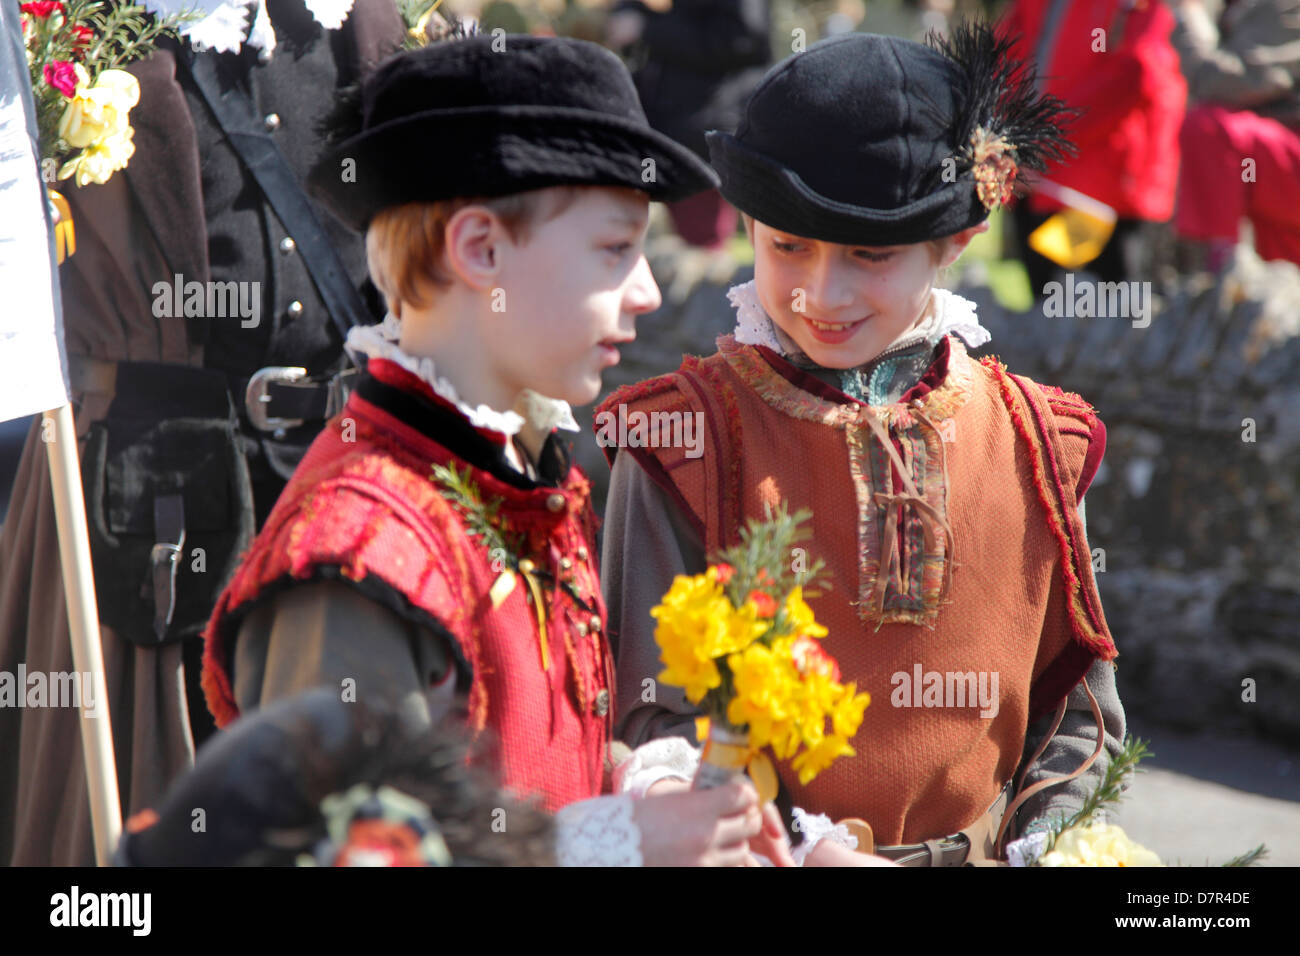 Two young Shakespearian Page Boys at the annual Birthday Memorial Parade at Stratford upon Avon. - Stock Image